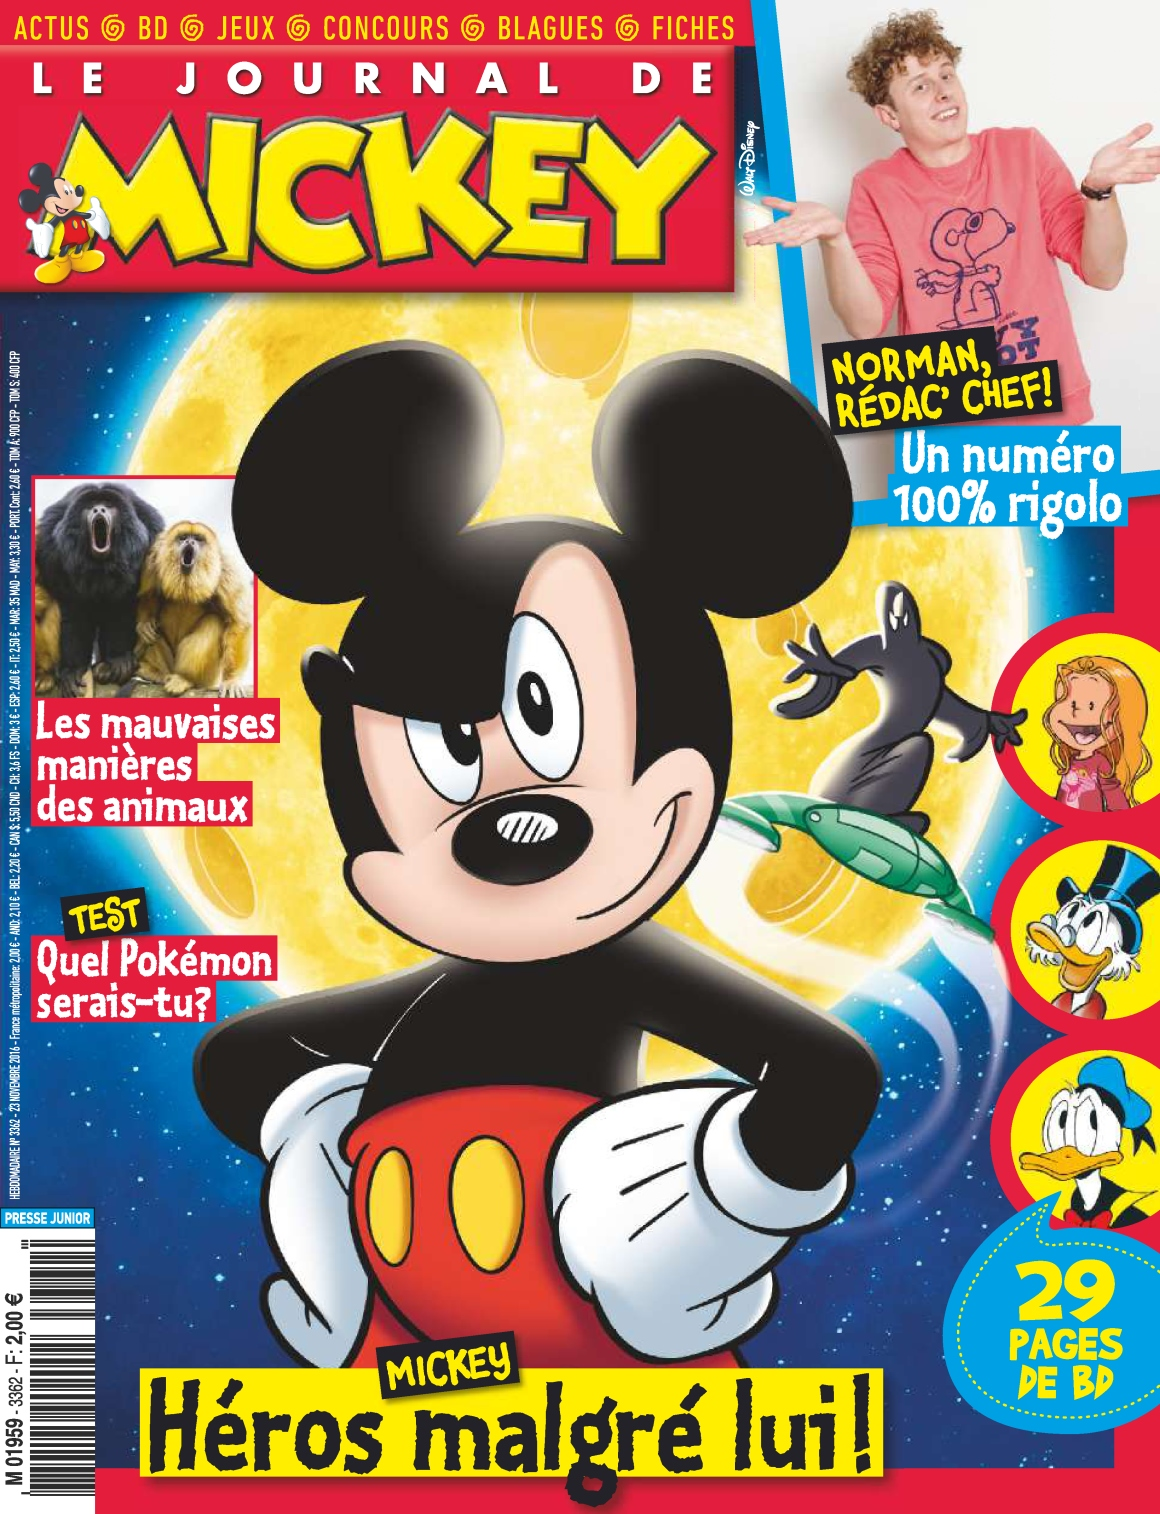 Le Journal de Mickey 3362 - 23 Novembre 2016